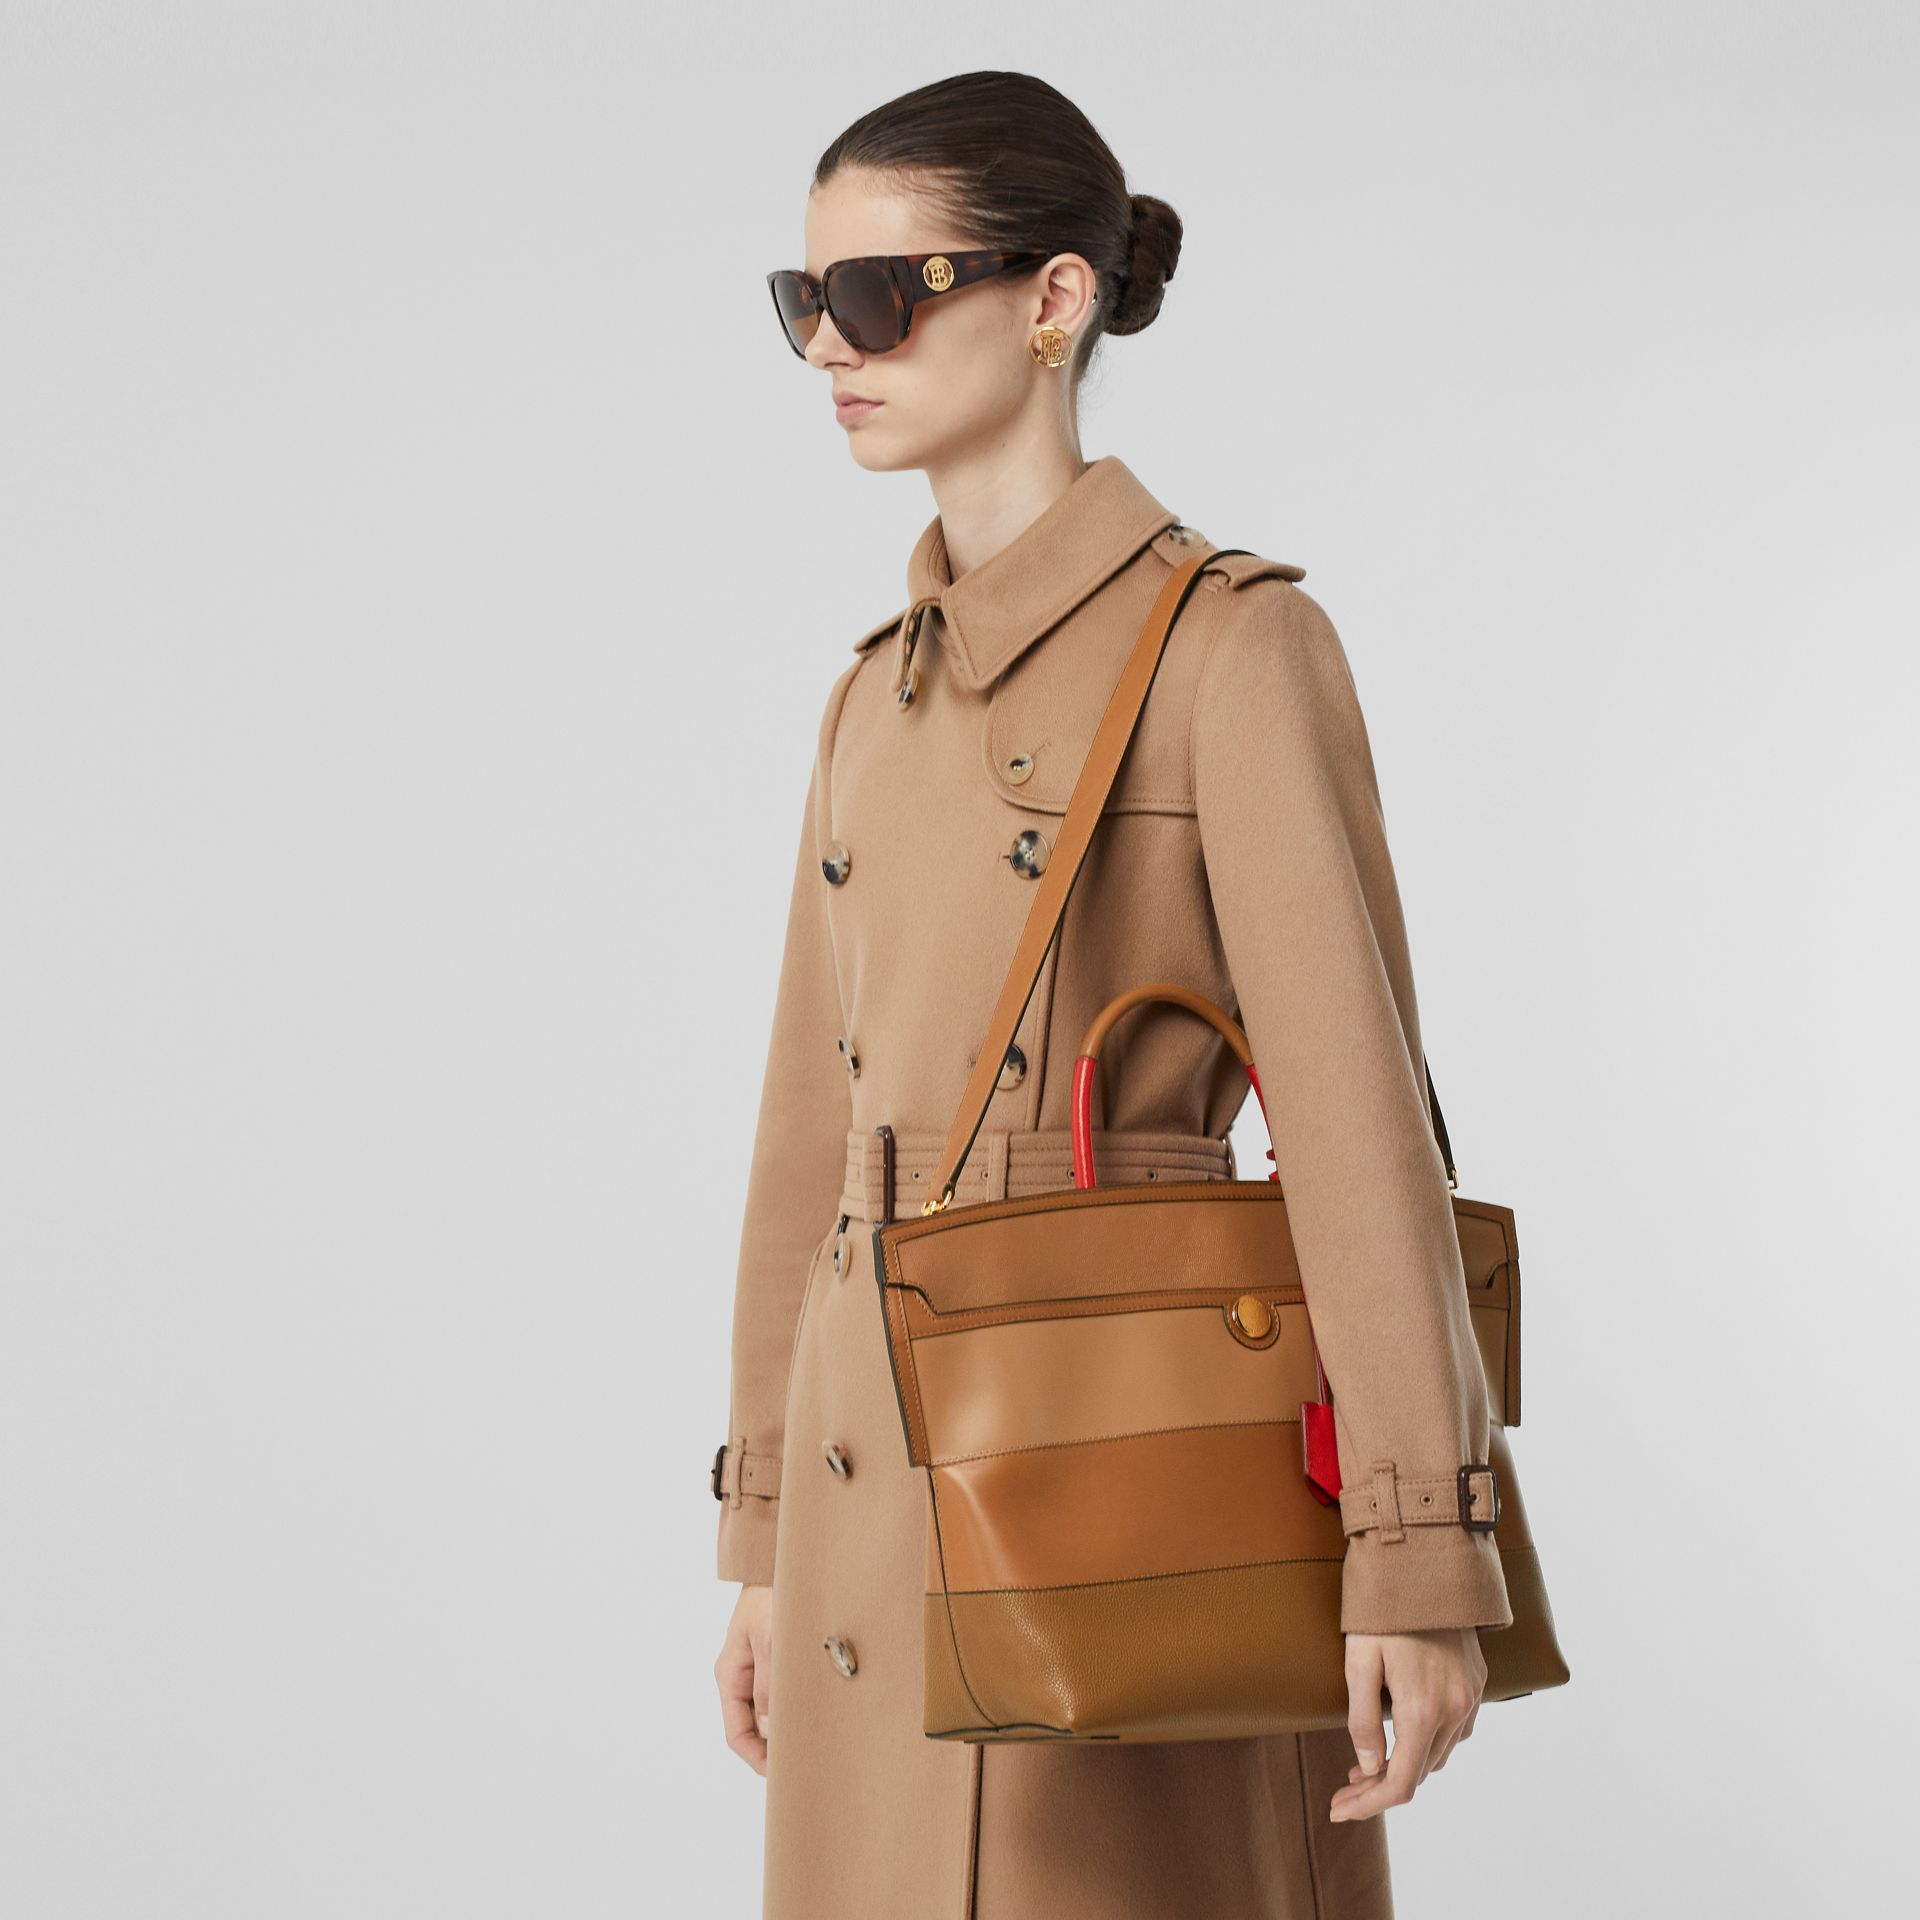 Panelled Leather Society Top Handle Bag in Warm Camel - Women | Burberry United Kingdom - gallery image 2